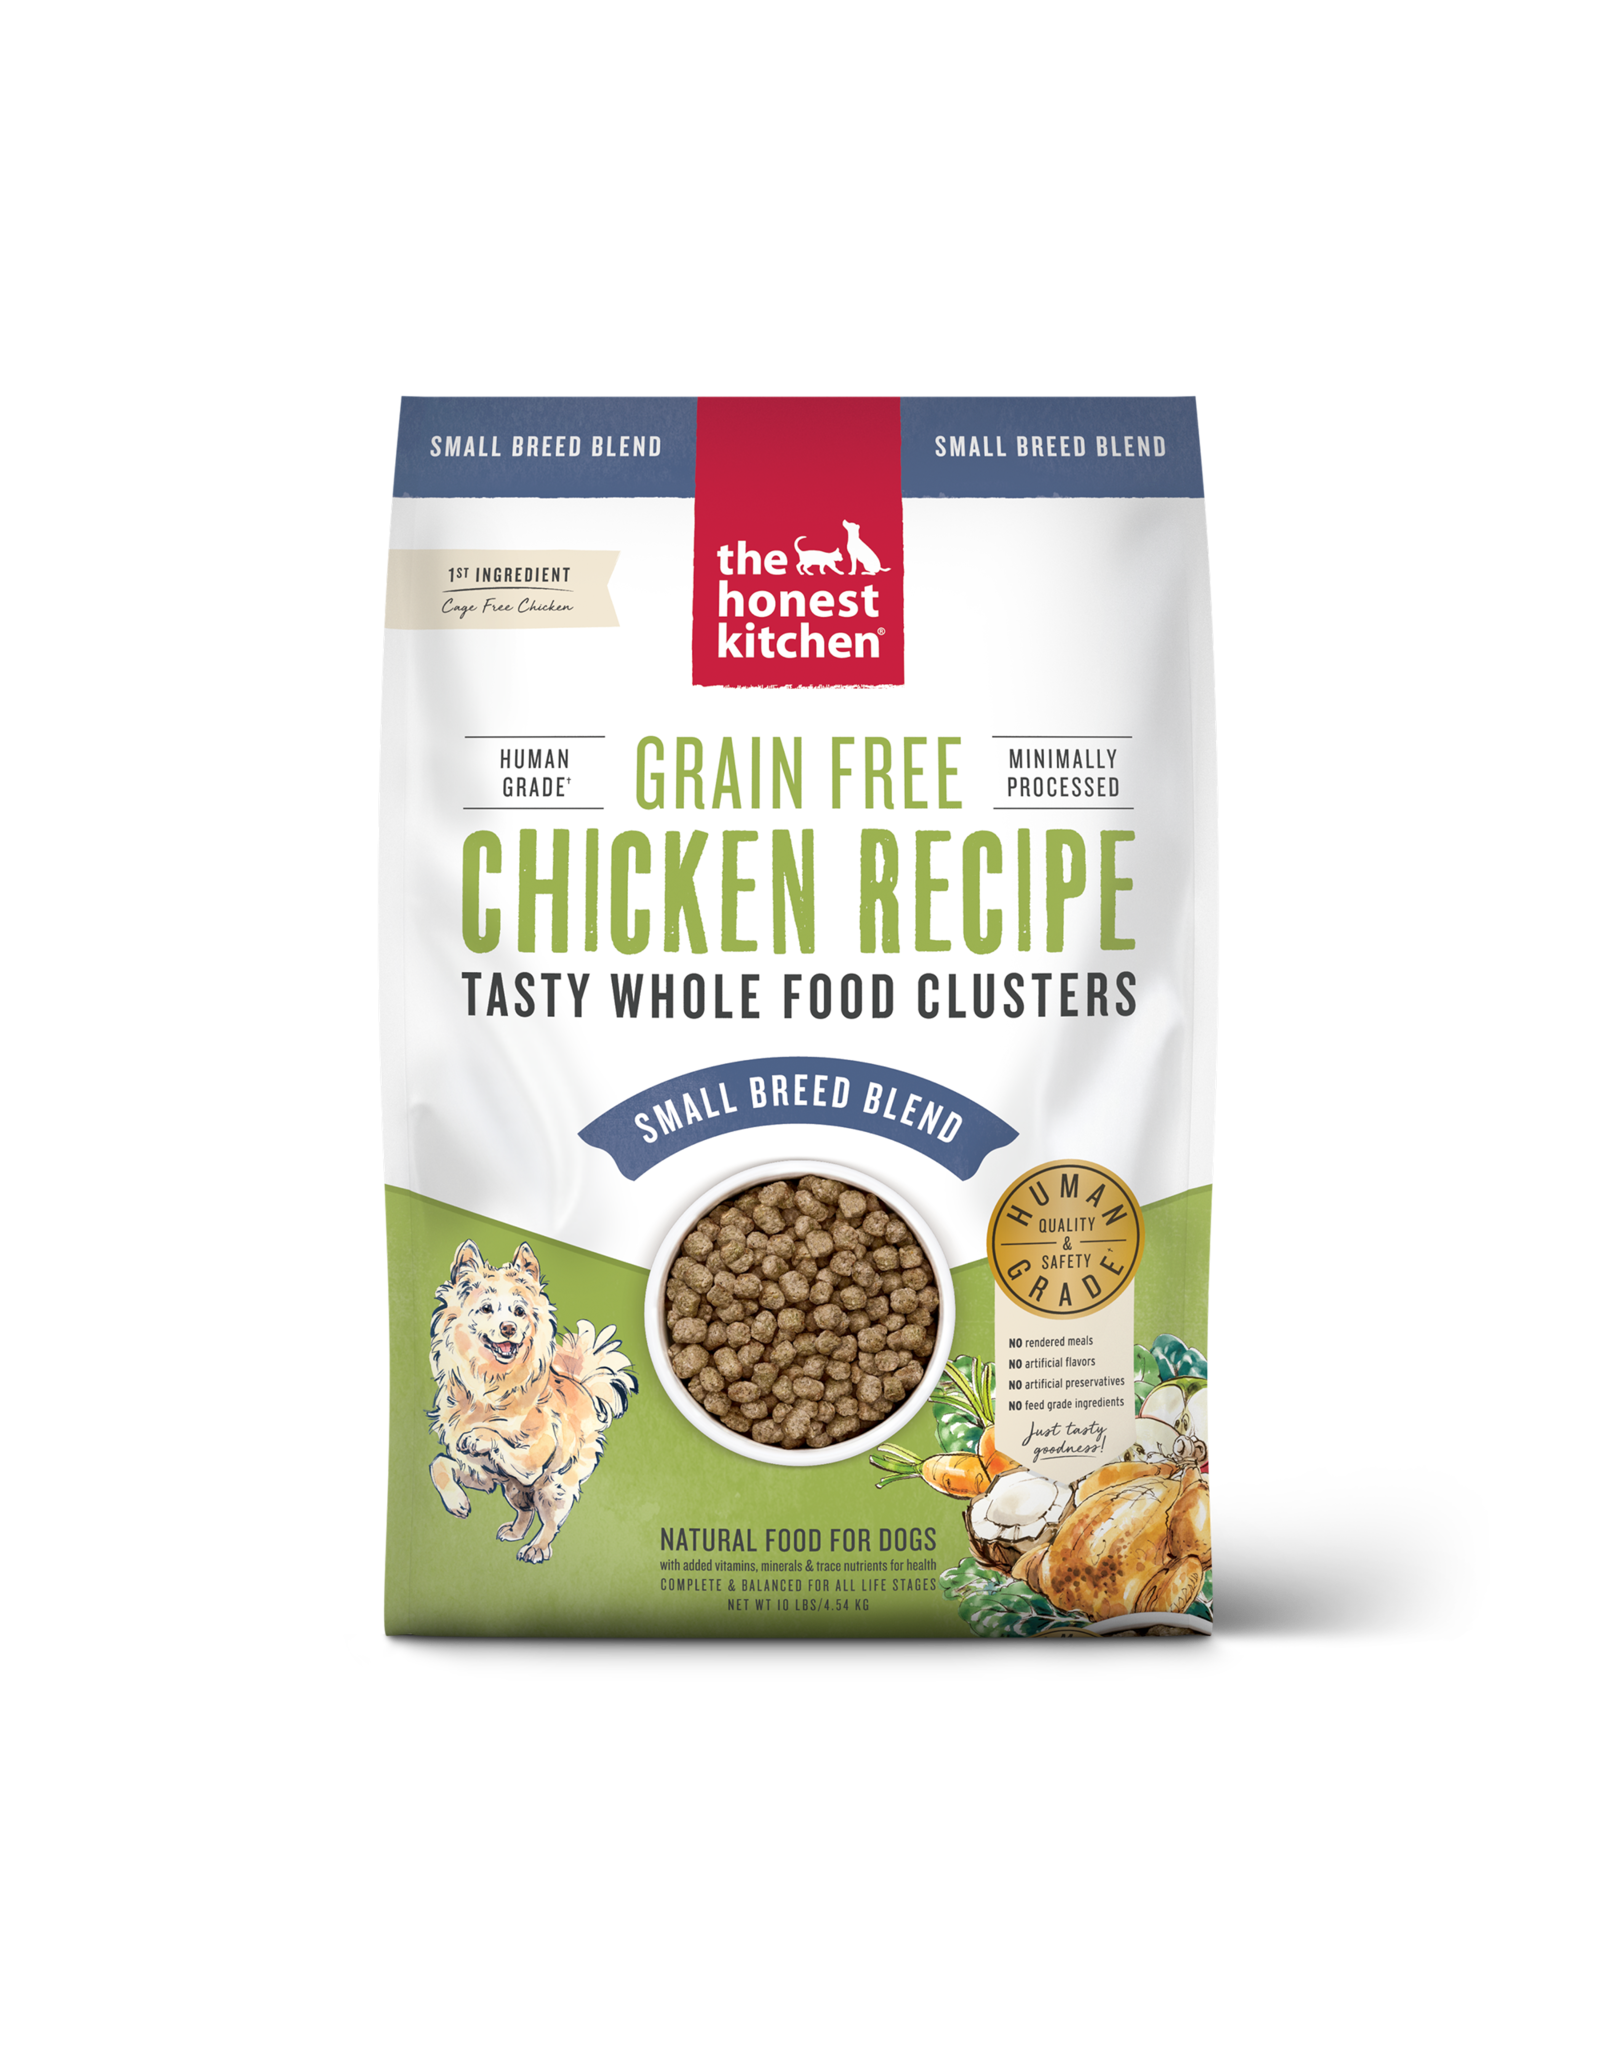 The Honest Kitchen THE HONEST KITCHEN WHOLE FOOD CLUSTERS SMALL BREED BLEND FOR DOGS GRAIN FREE CHICKEN RECIPE